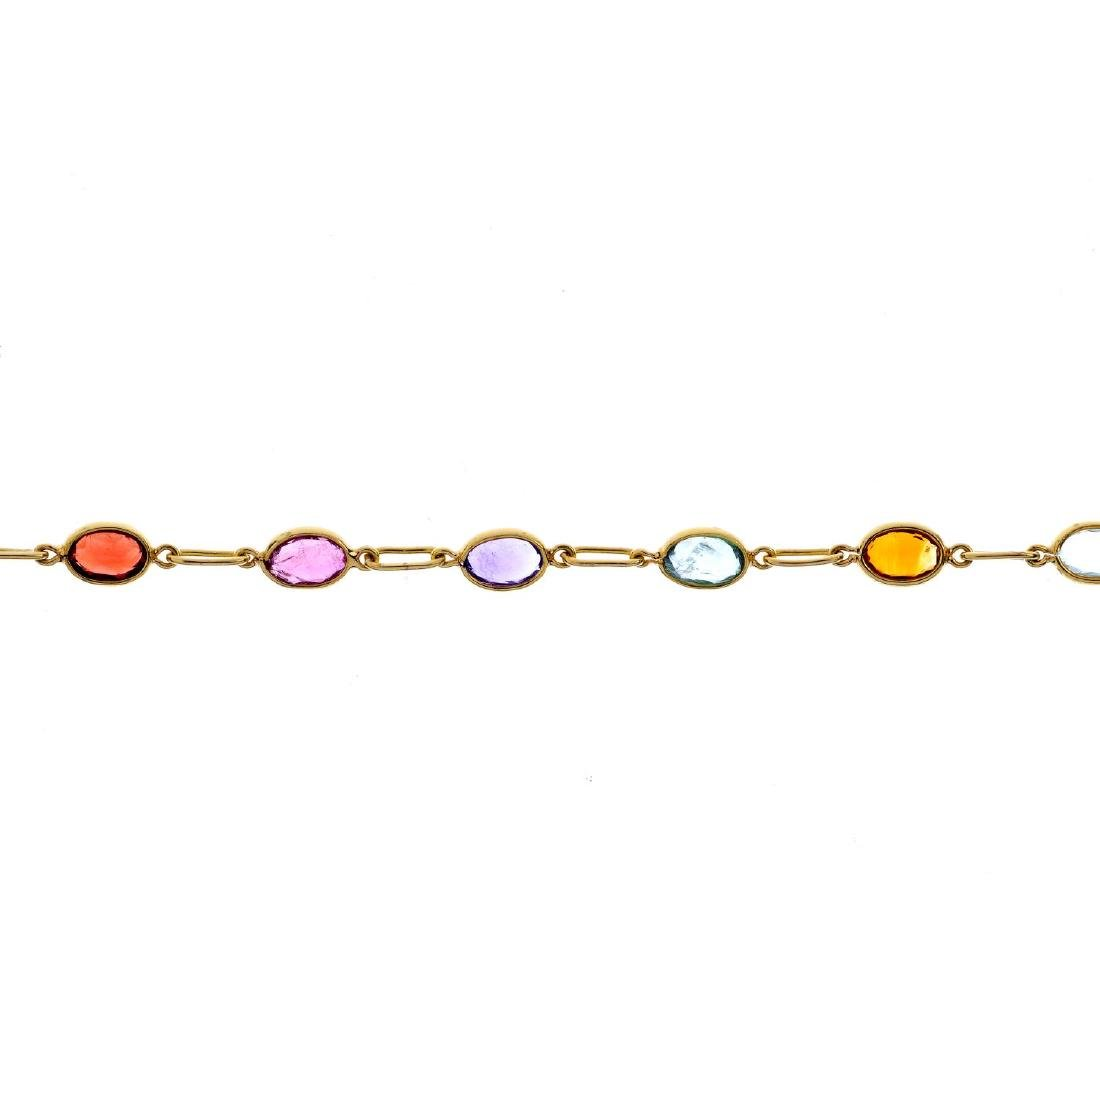 A gem-set bracelet. Designed as a series of oval-shape